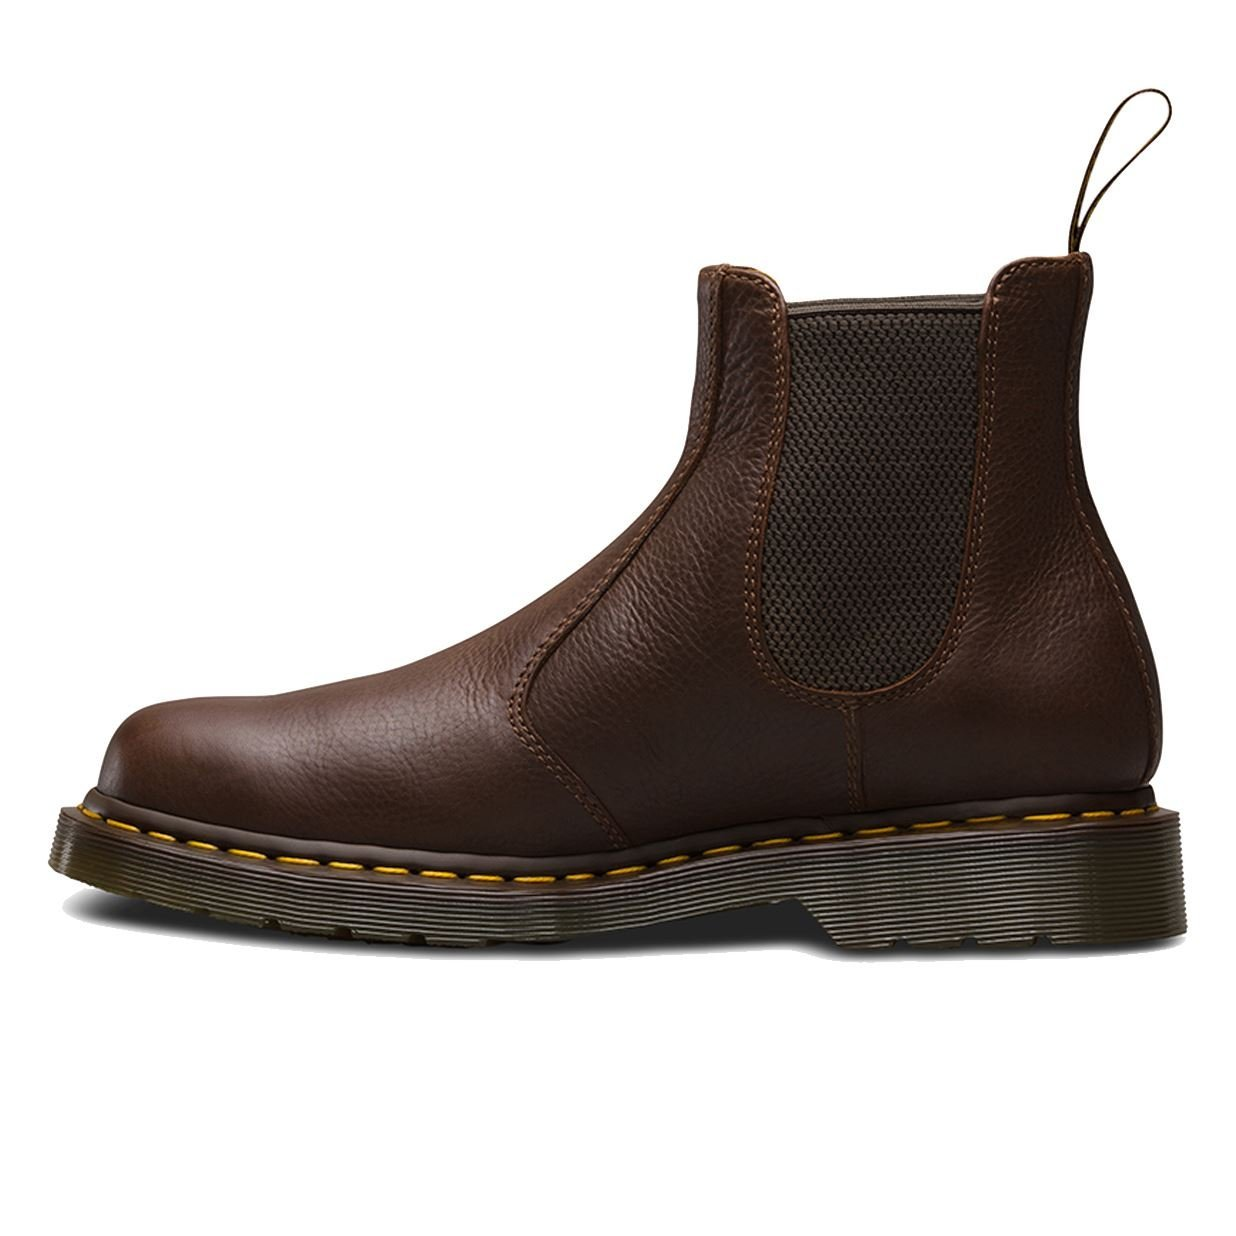 Dr. Martens Men's 2976 CARPATHIAN Chelsea Boot, Tan, 7 UK/8 M